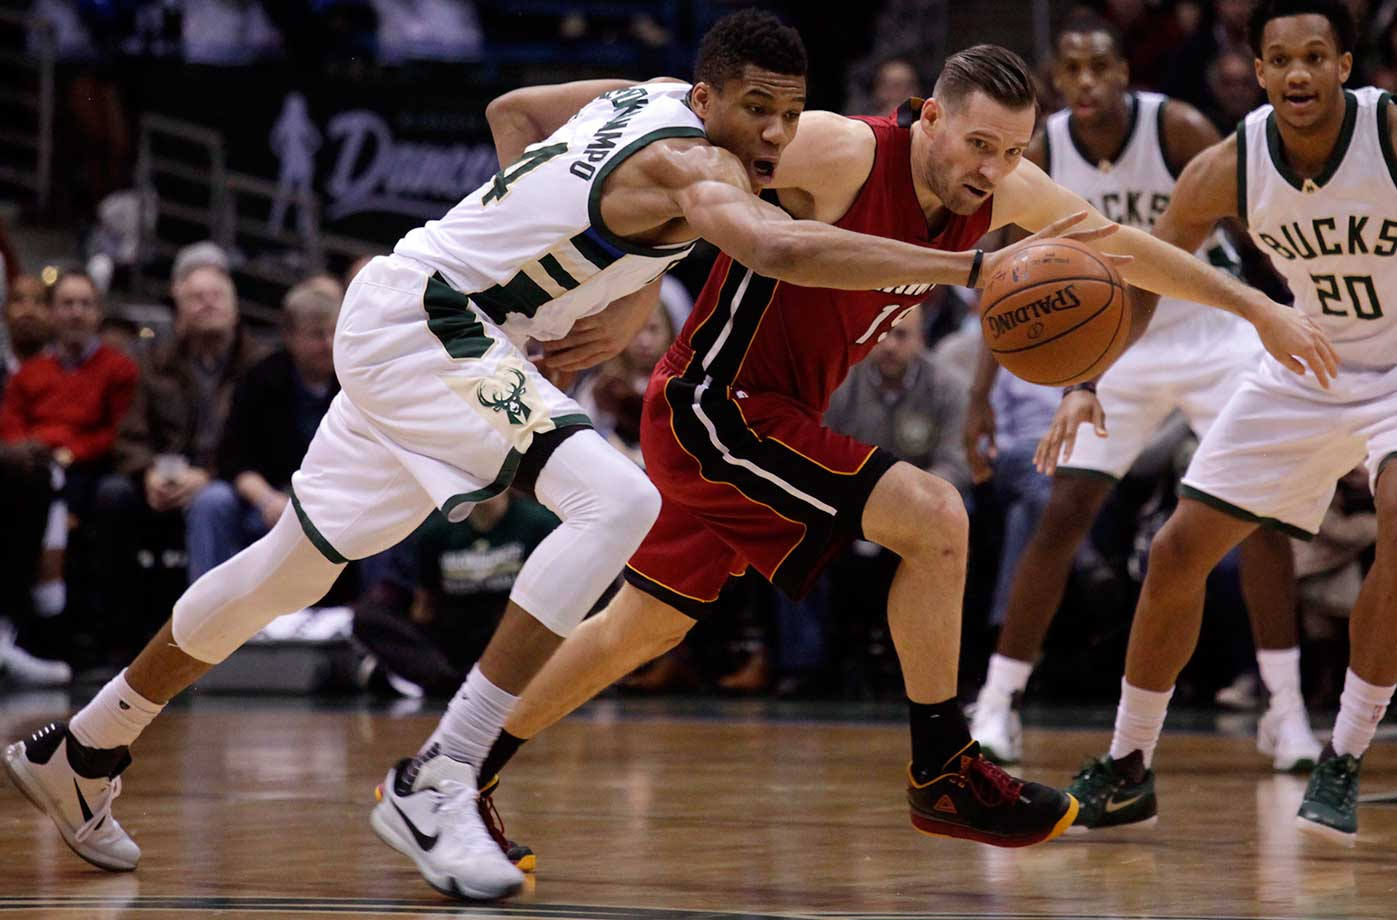 Milwaukee Bucks forward Giannis Antetokounmpo steals the ball from Miami Heat guard Beno Udrih in Milwaukee.